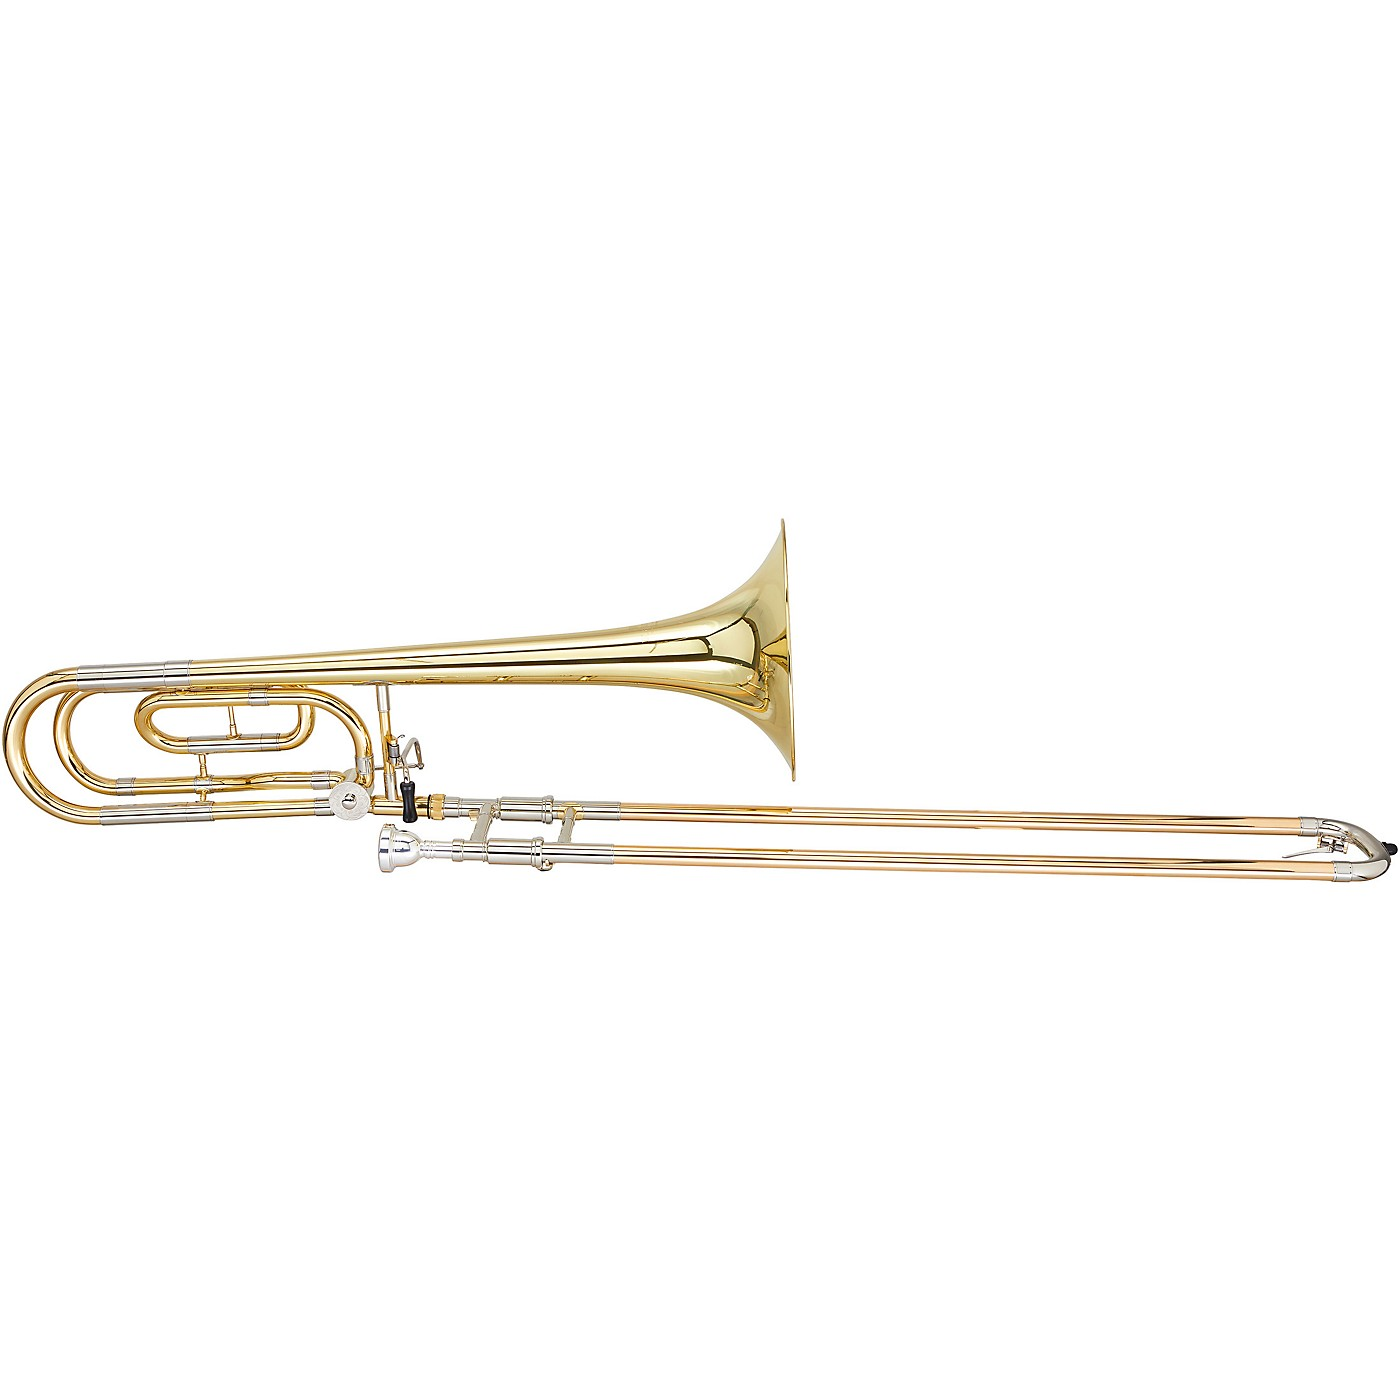 Blessing BTB1488 Performance Series Bb/F Large Bore Rotor Trombone Outfit with Closed Wrap thumbnail